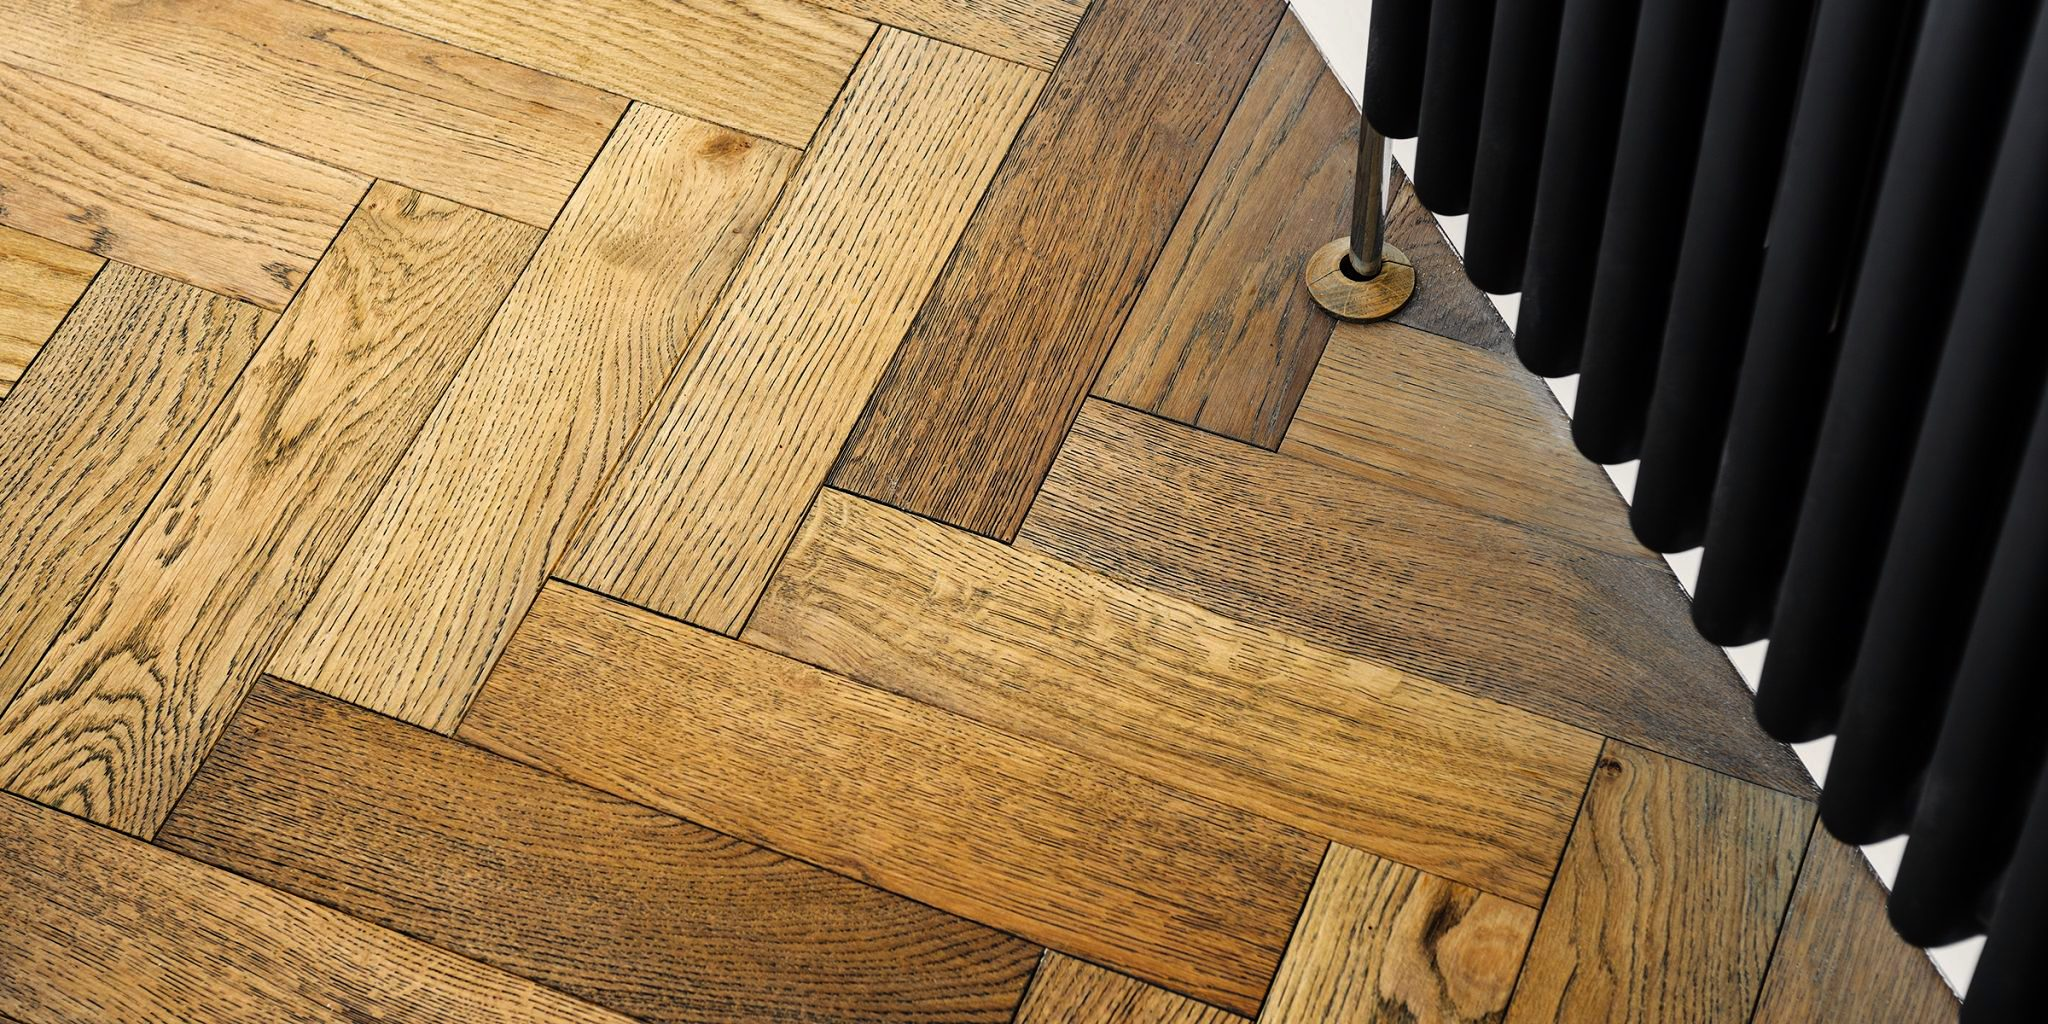 Dolcevita 15/4 x 90mm Smoked Fumed Oak Herringbone Engineered